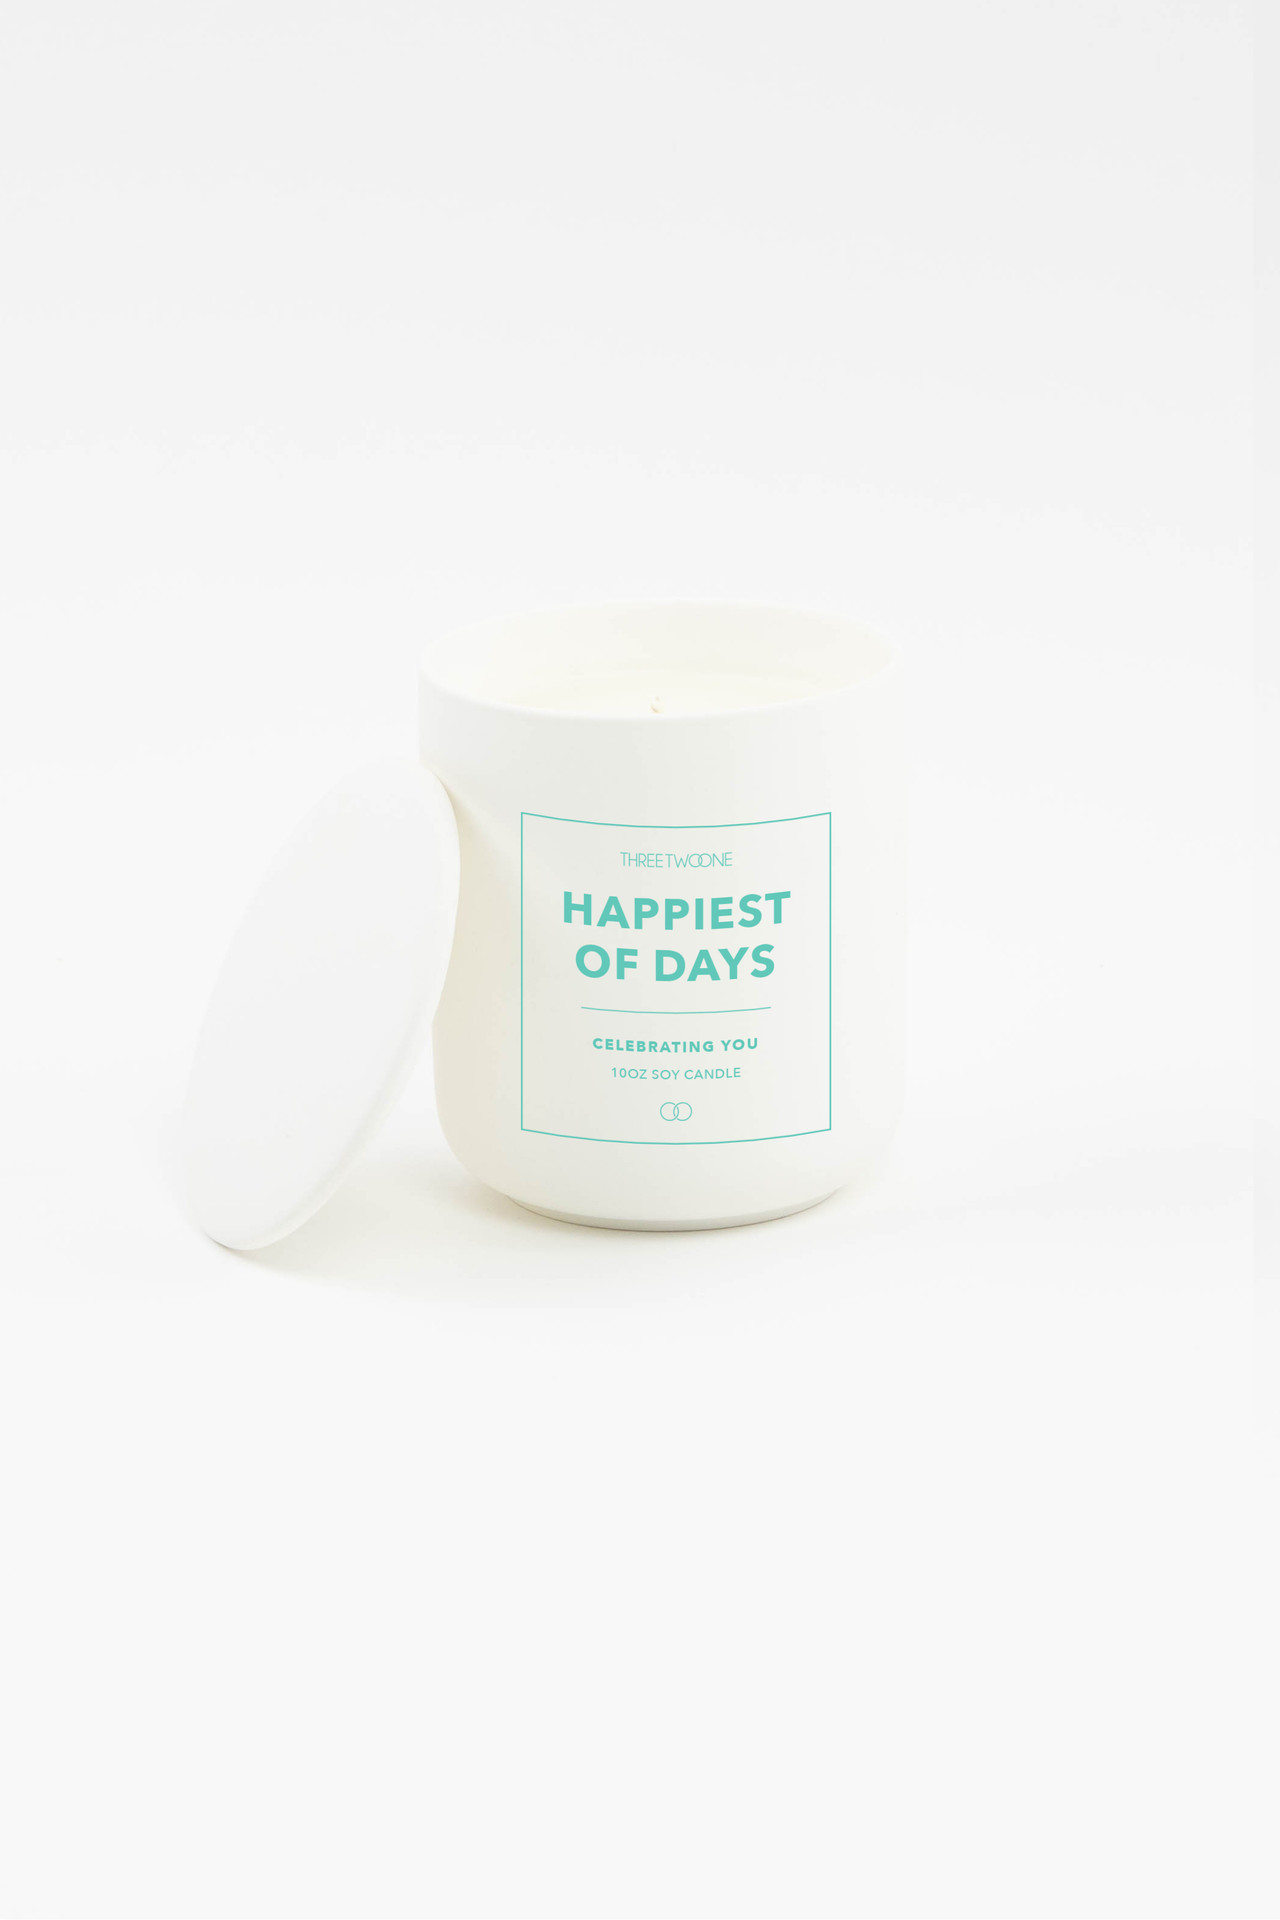 Celebration Ceramic Candle - Happiest of Days